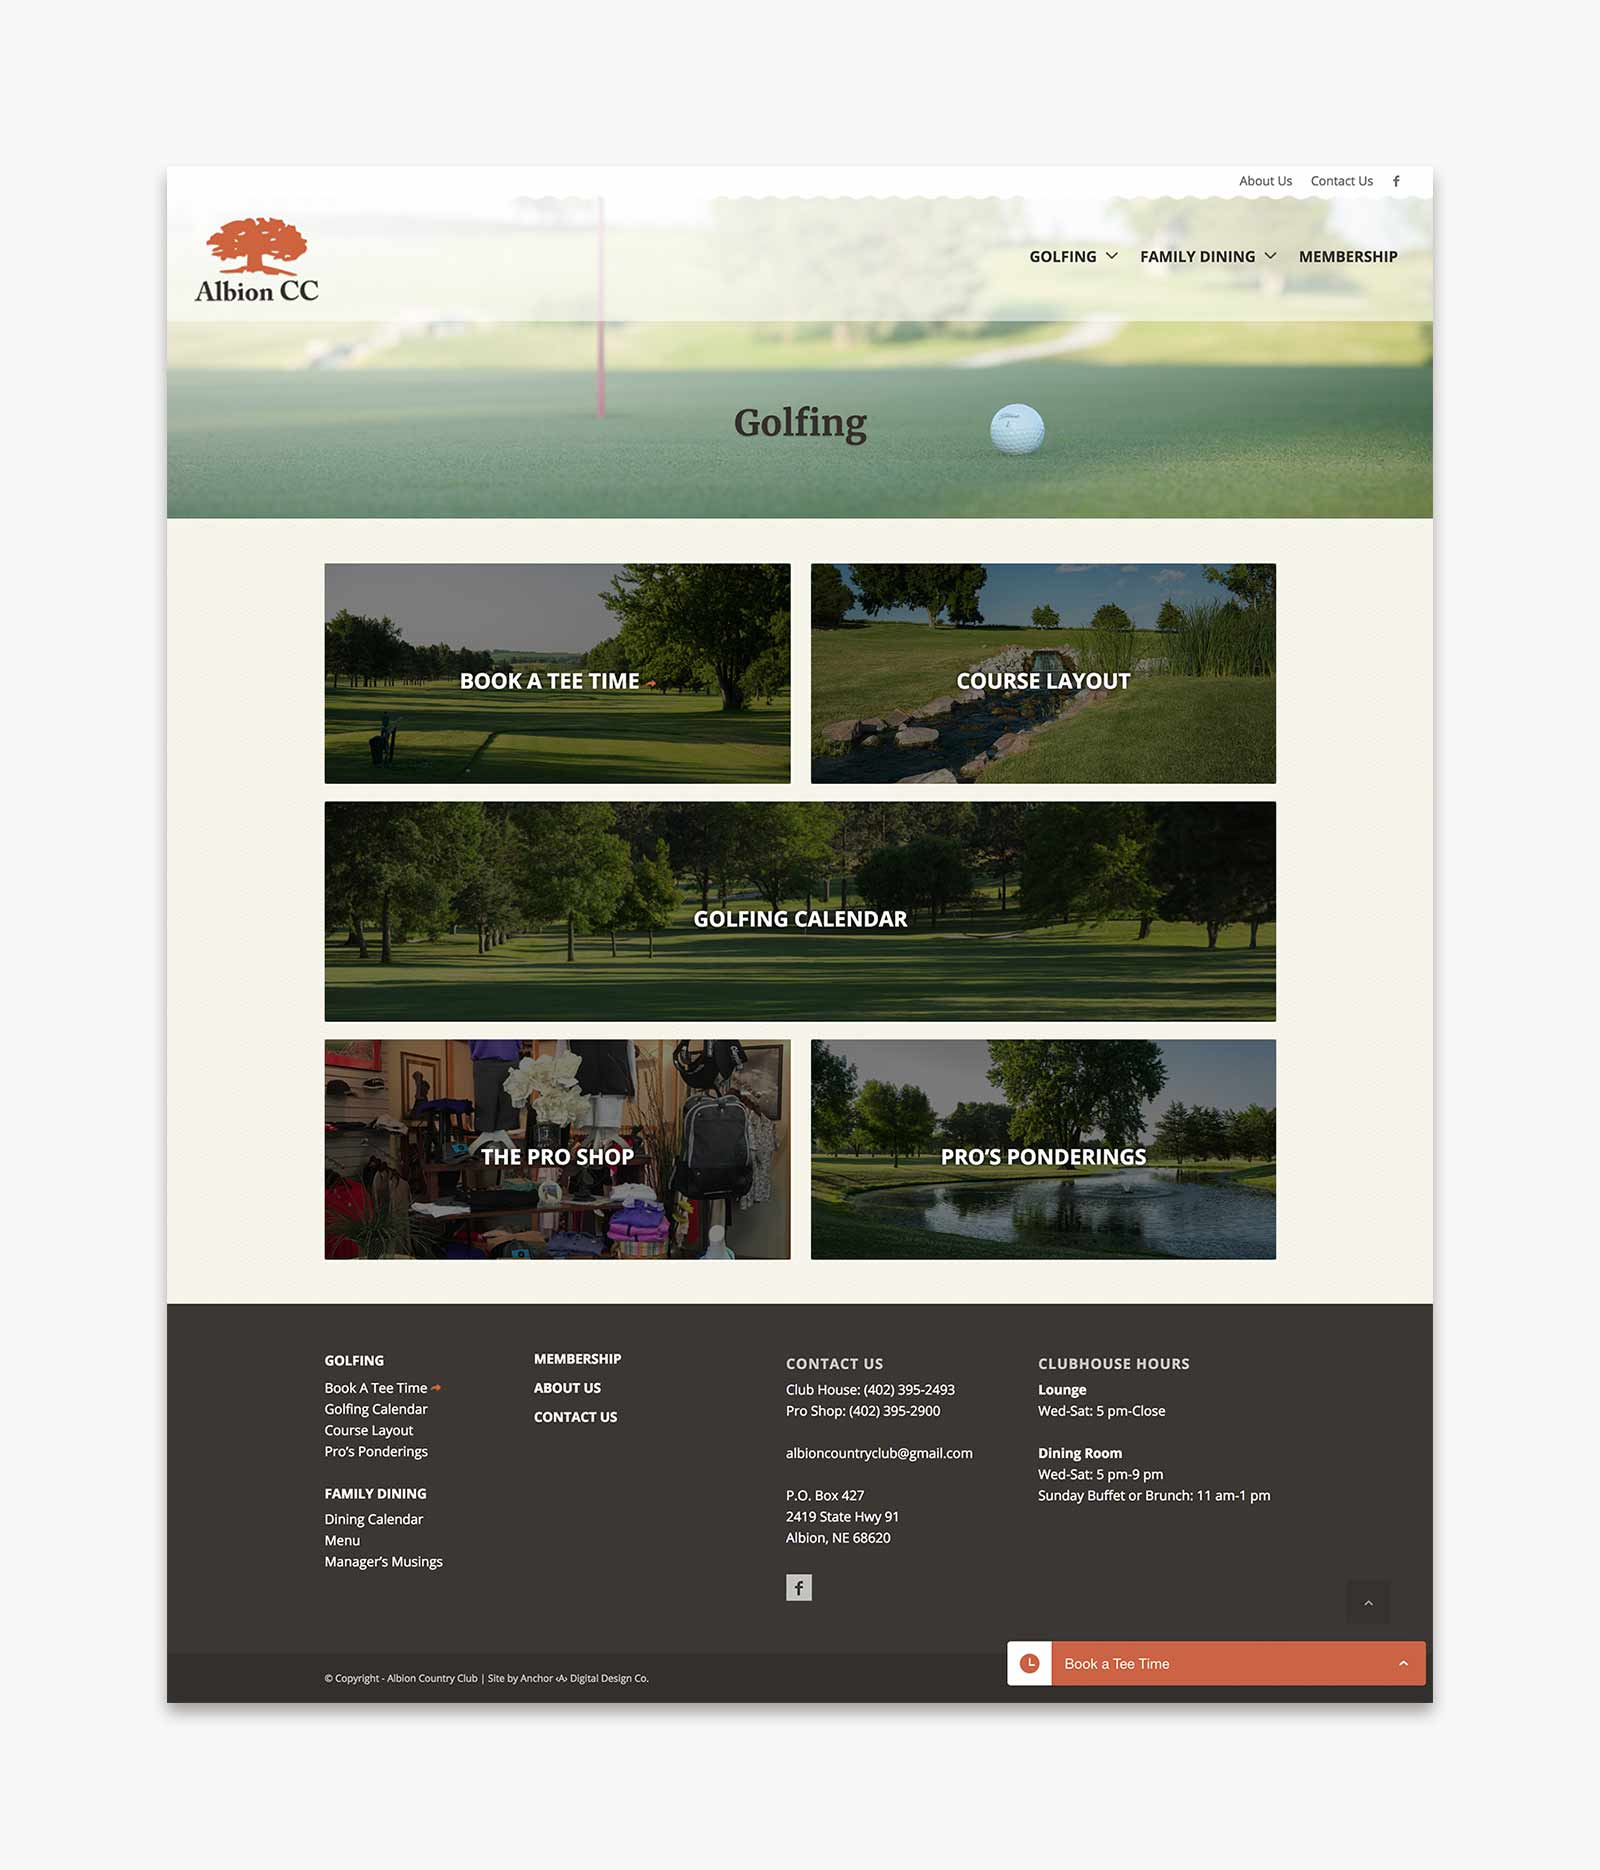 Albion Country Club - Golfing landing page layout for website